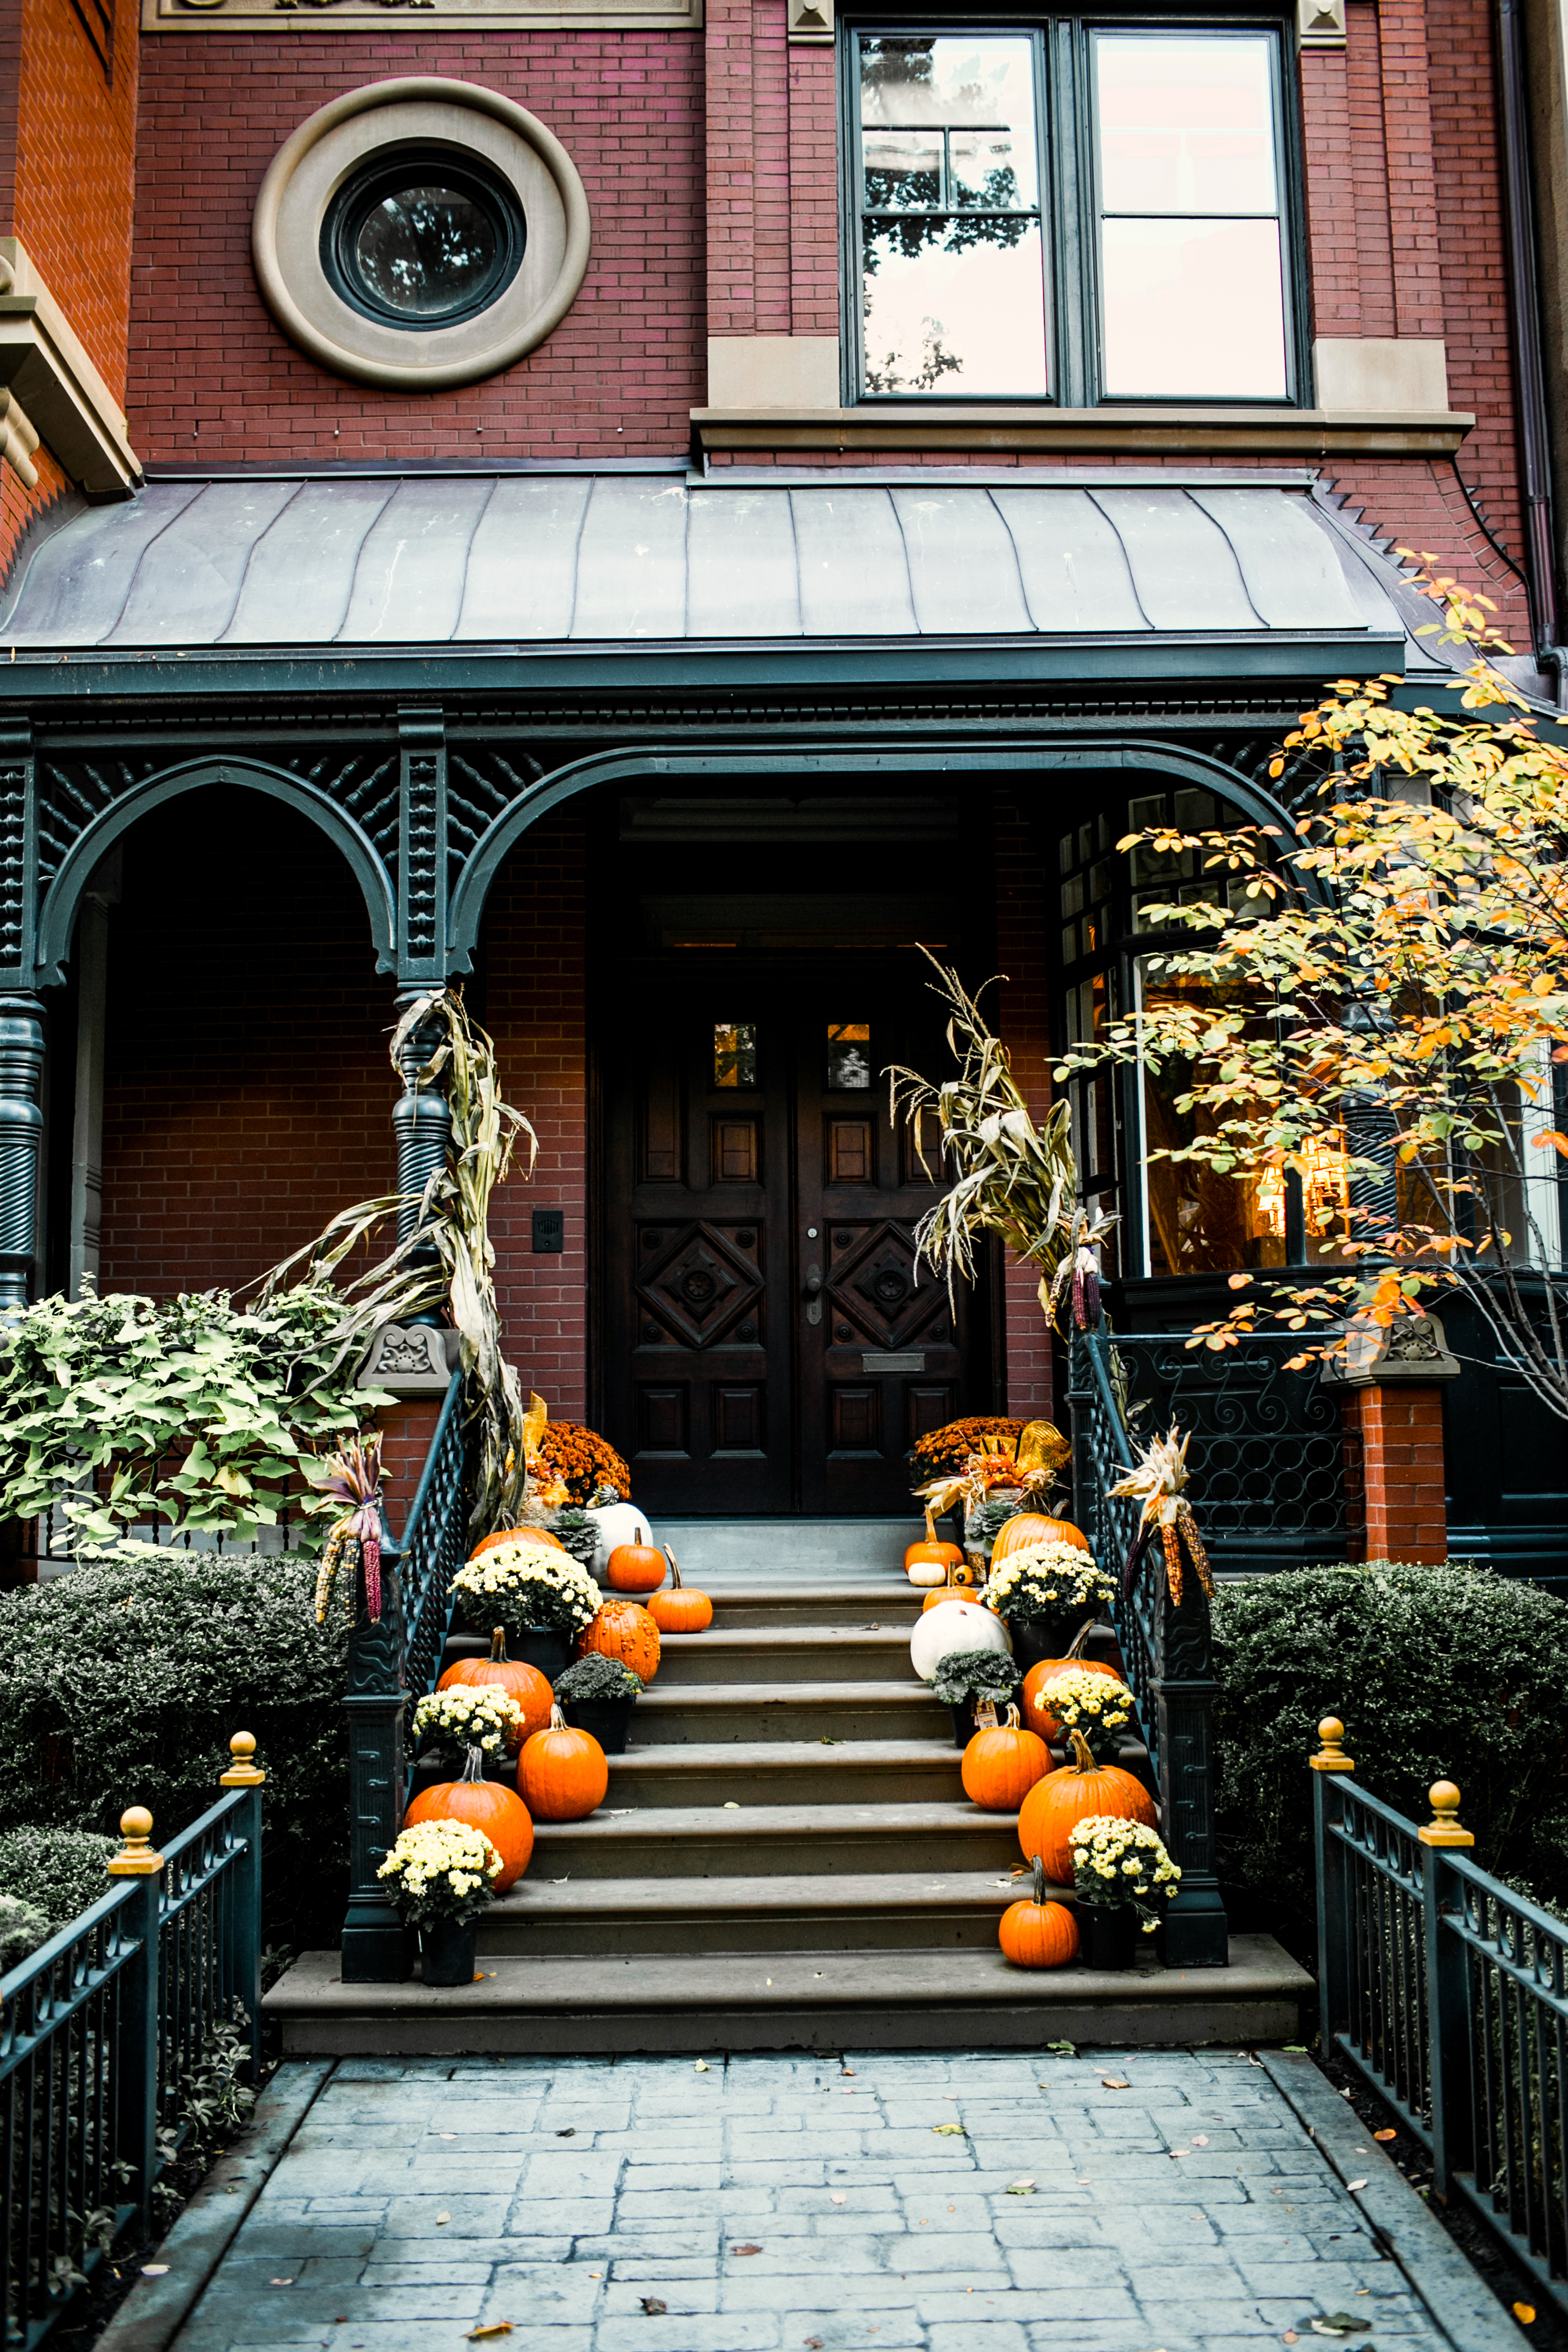 A beautiful stoop filled with pumpkins and mums.